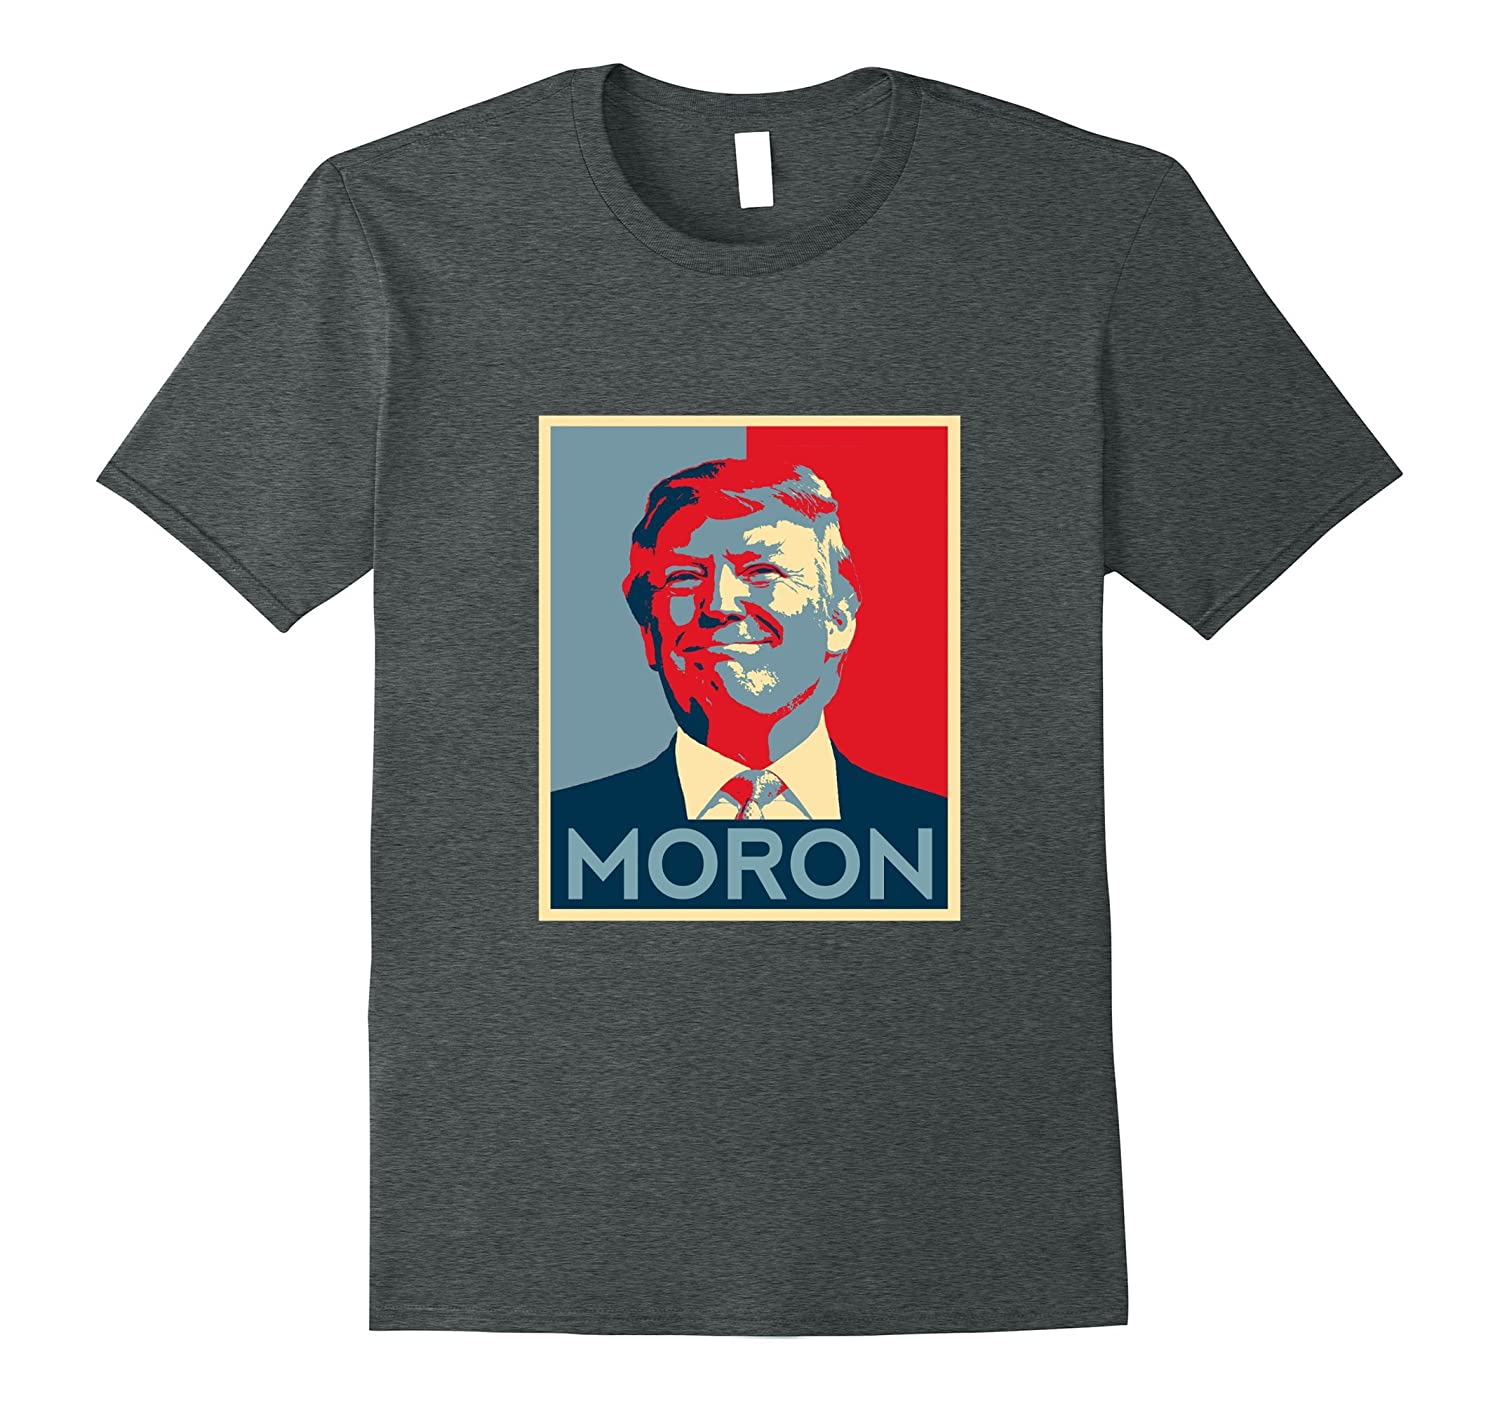 anti trump gear resistance tee shirts liberal gifts moron. Black Bedroom Furniture Sets. Home Design Ideas